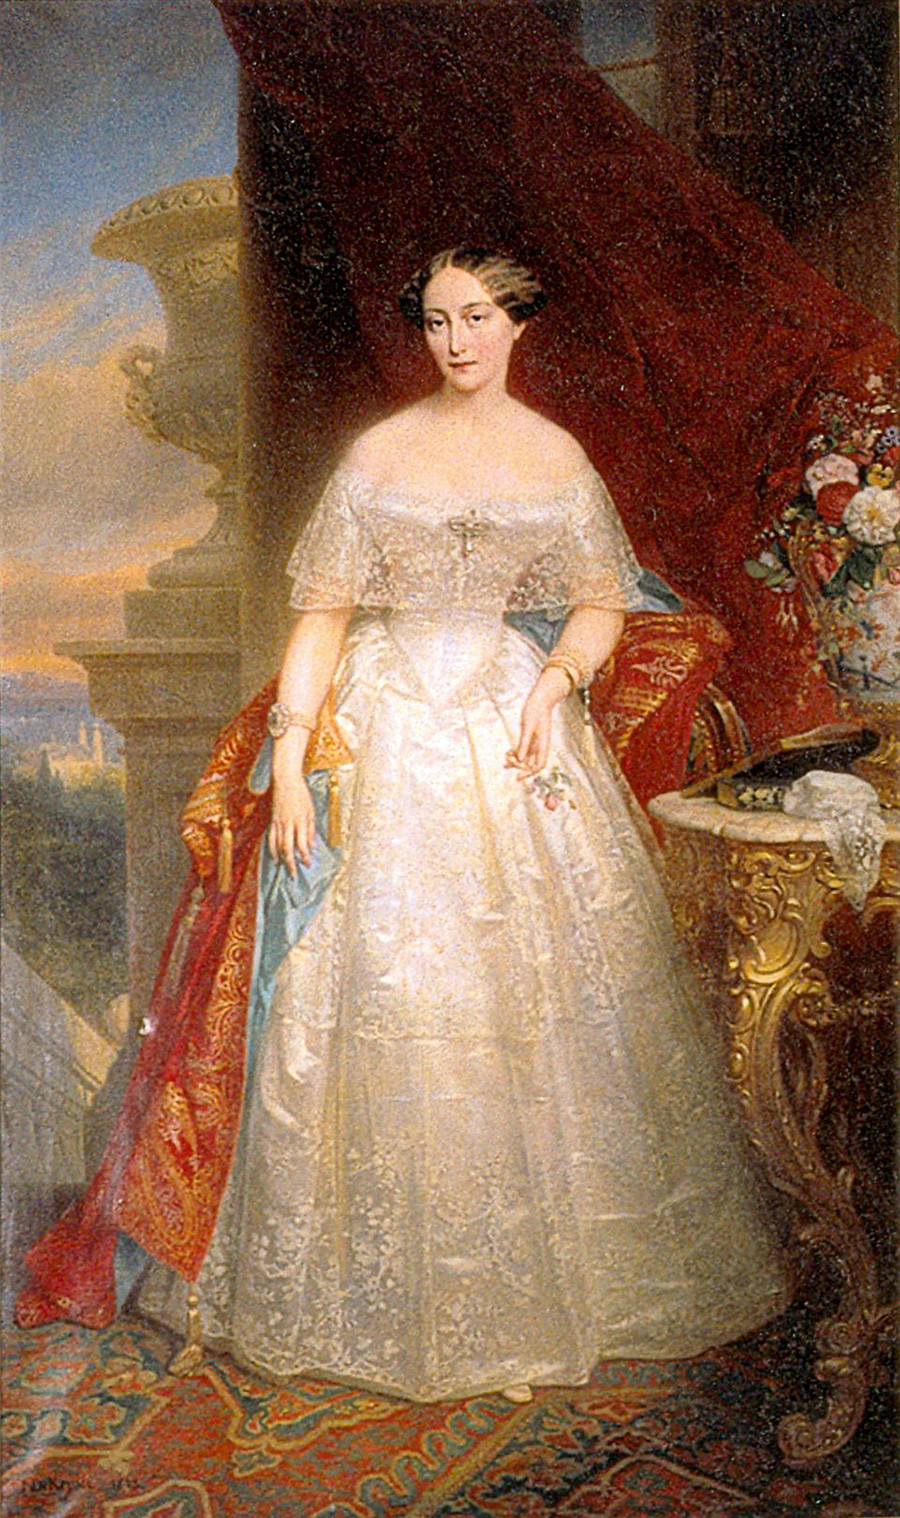 Portrait of Olga of Russia (1822-1892), Princess of Württemberg by Nicaise de Keyser